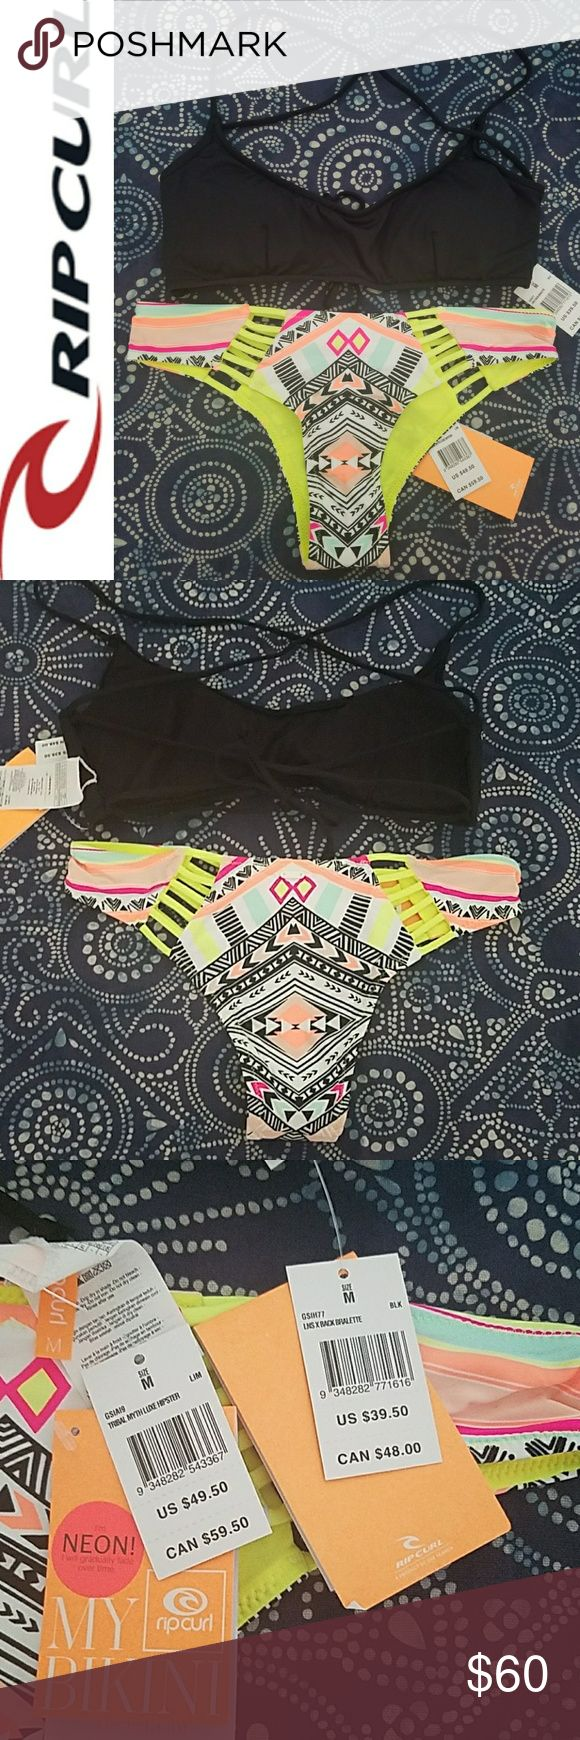 NWT Rip Curl Bikini Size Medium New with tags! Rip Curl Bikini: Neon Print Hipster Bottoms & Solid Black Strappy Crossback Bralette. Both Size Medium. Hygienic liner still attached to bottoms. Top has embroidered logo on chest. Bottoms have a white rubber logo on the back near the top.   Sorry - no trades. Bundle and save! From a smoke-free home. Rip Curl Swim Bikinis